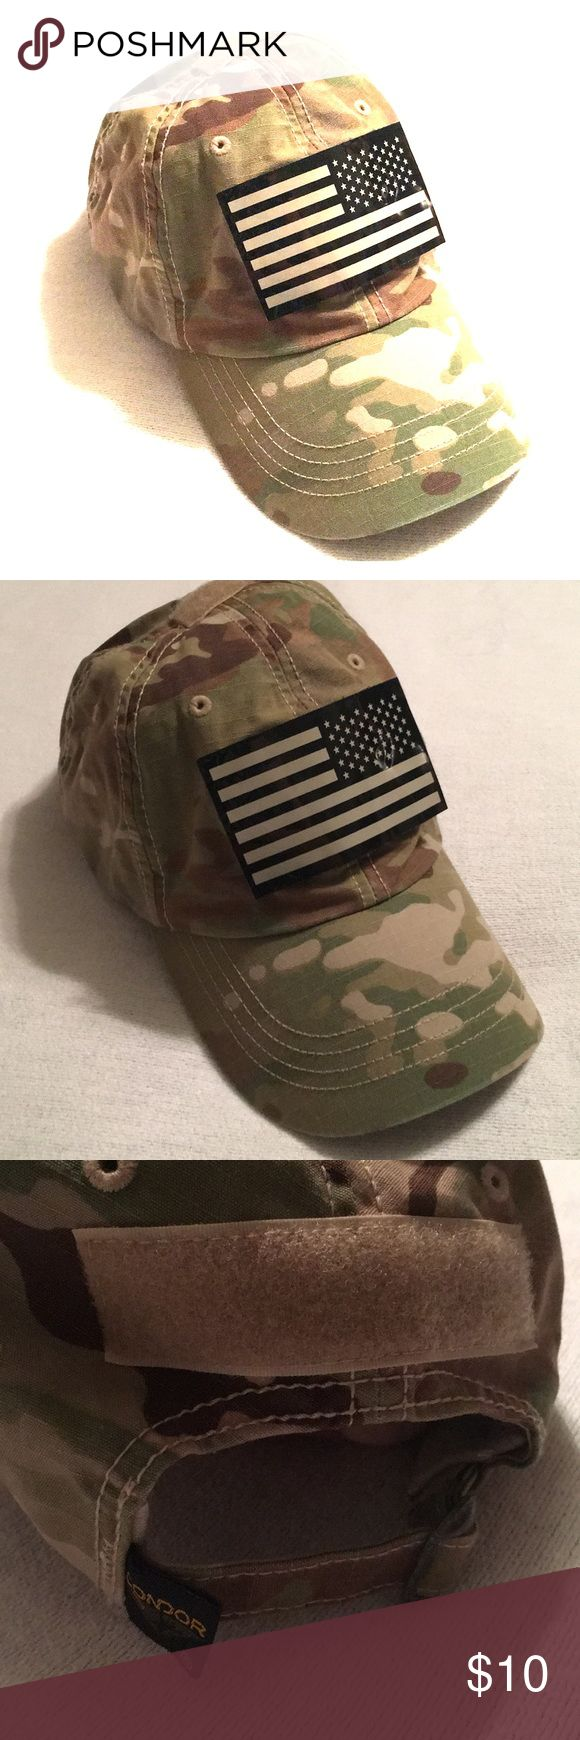 Condor Multicam USA Camo Baseball Hat BRAND: Condor SIZE: OS CONDITION: 9/10 DAMAGE/WEAR: None COLOR: Camo  Nice baseball style cap. Army multicam pattern with velcro IR American Flag patch. Great for hunting or casual wear. Flag patch is removable. Camo tabs are clean and debris free. Adjustable fit. No holes, odors or stains. Smoke & pet free. Condor Accessories Hats